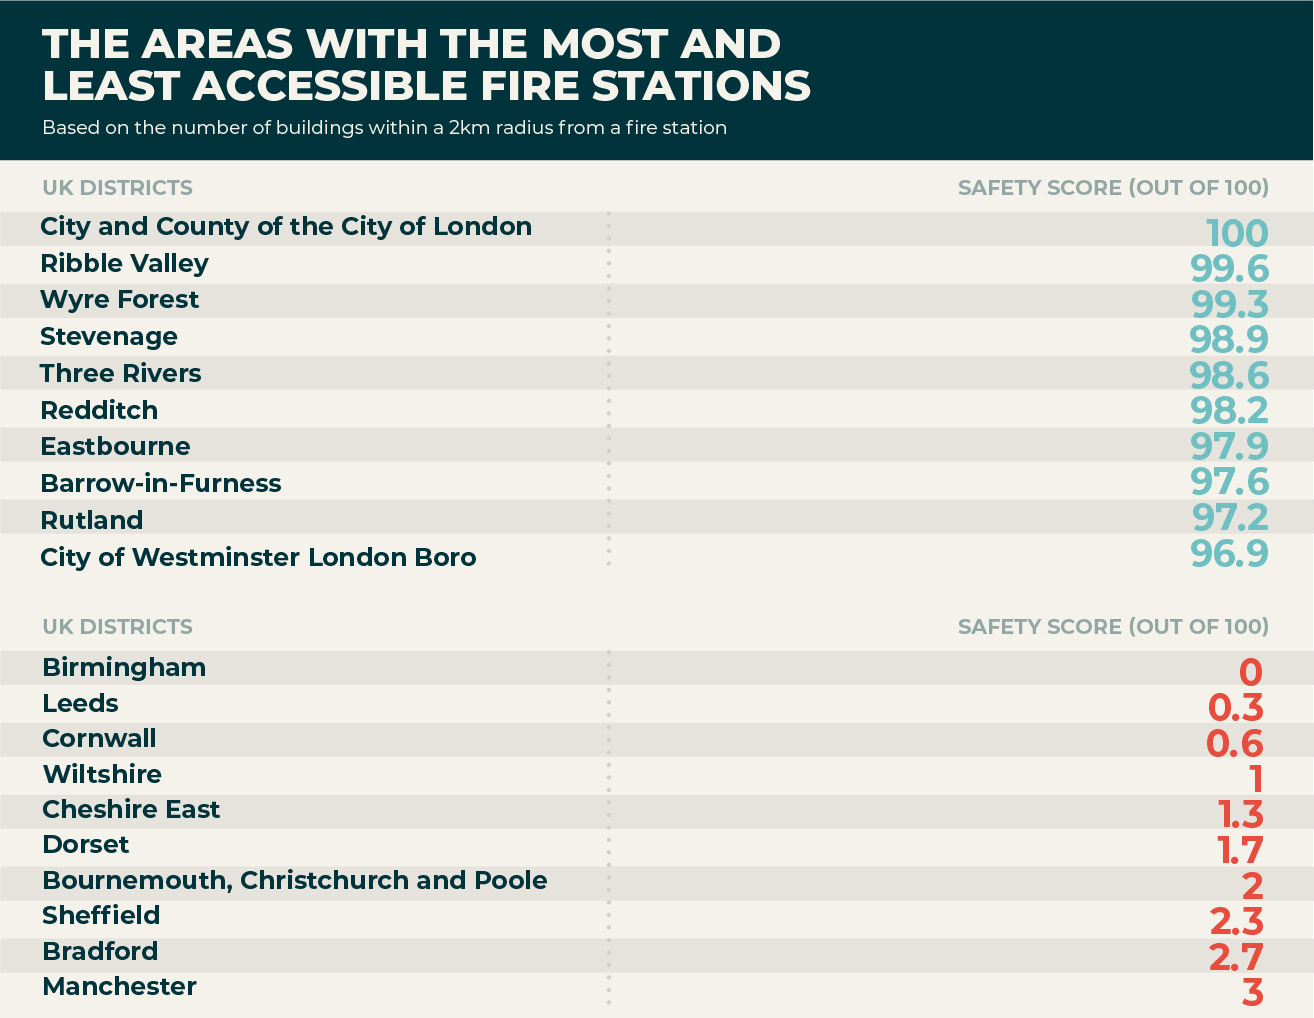 Which areas have the most accessible fire stations?